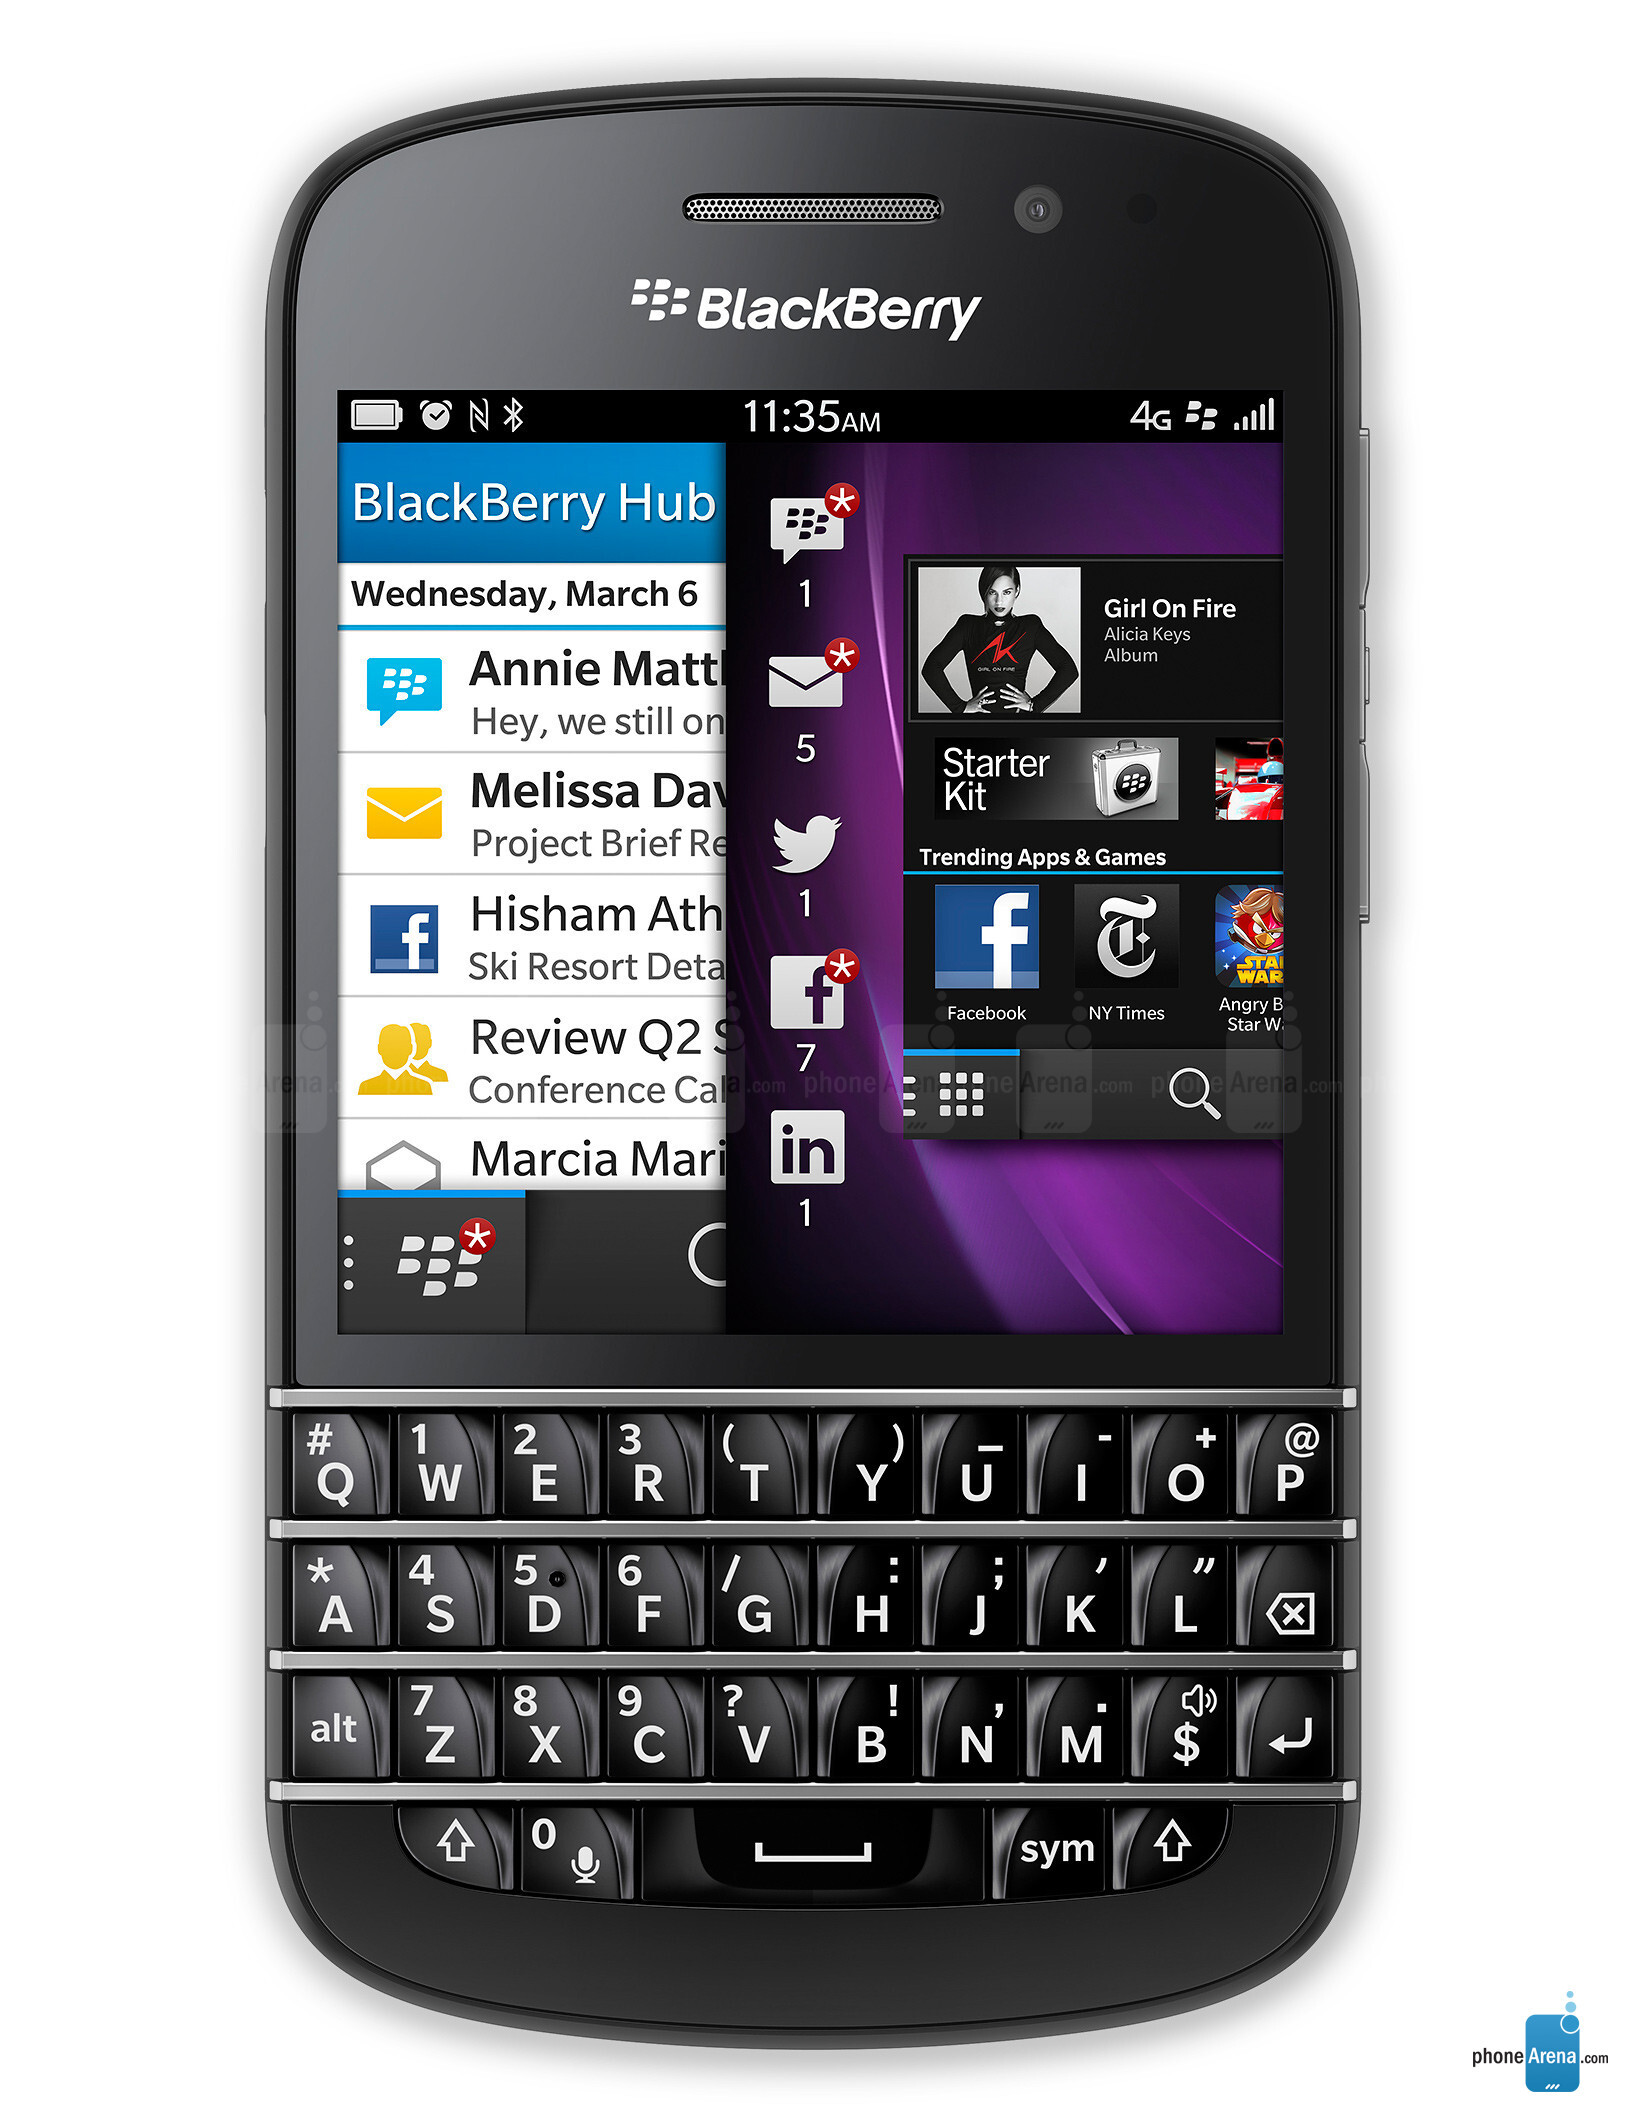 BlackBerry Q10 specs